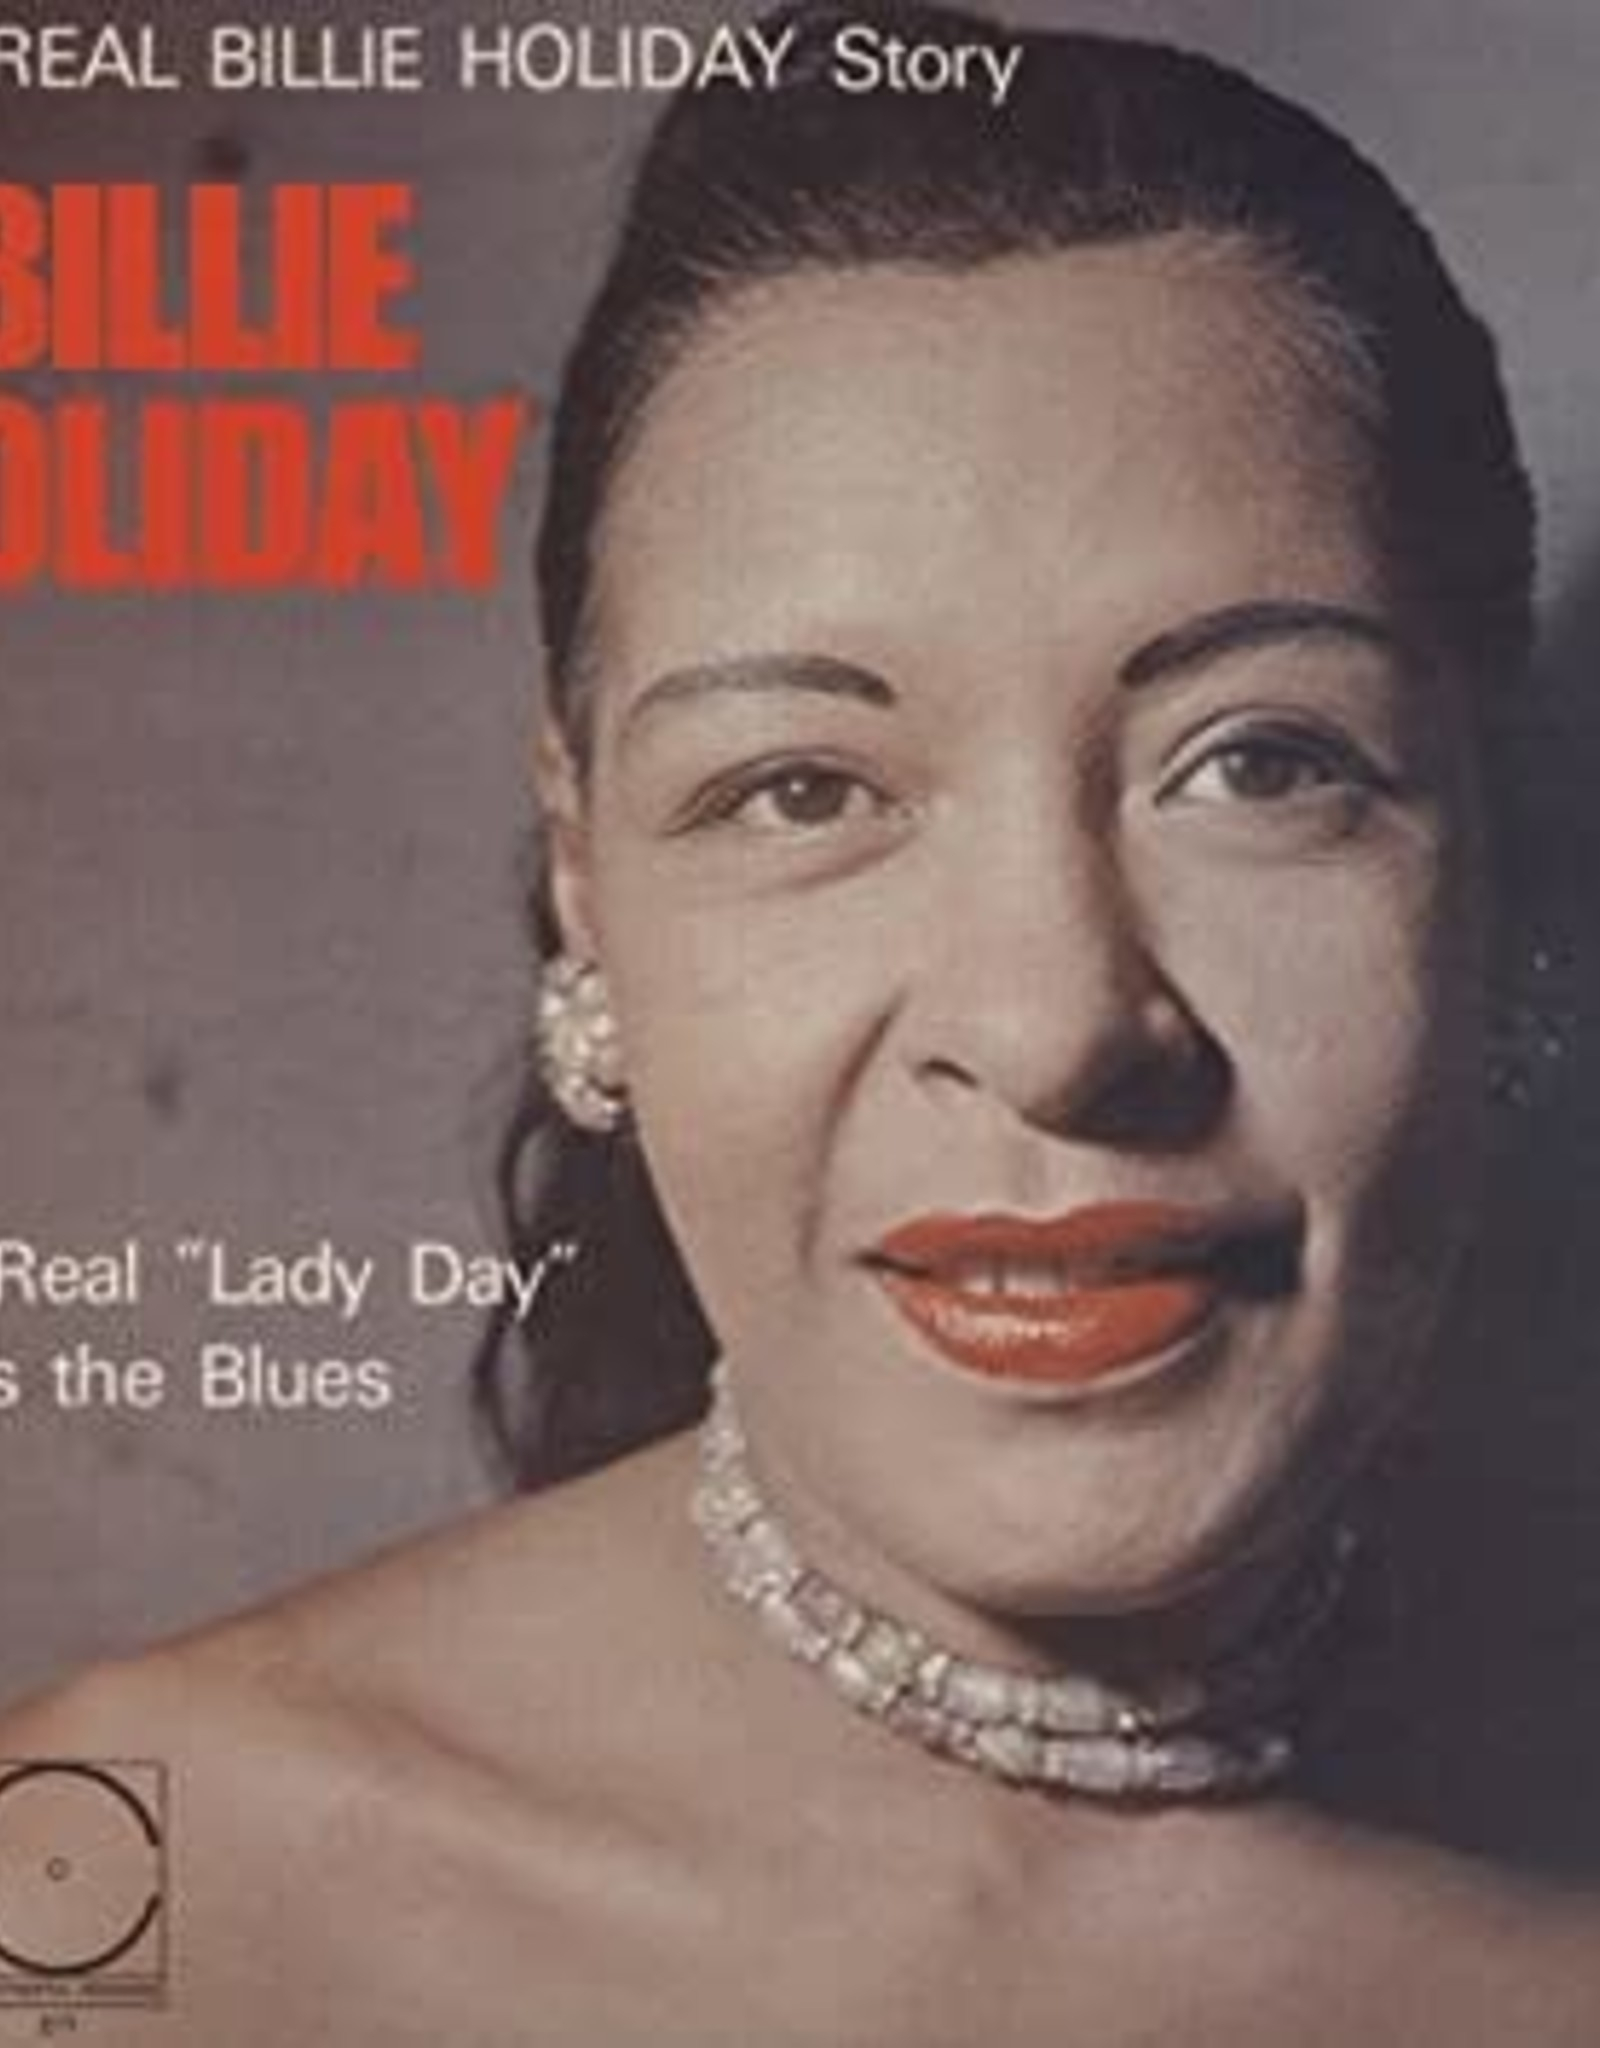 """Billie Holiday - The Real """"Lady Day"""" Sings the Blues"""